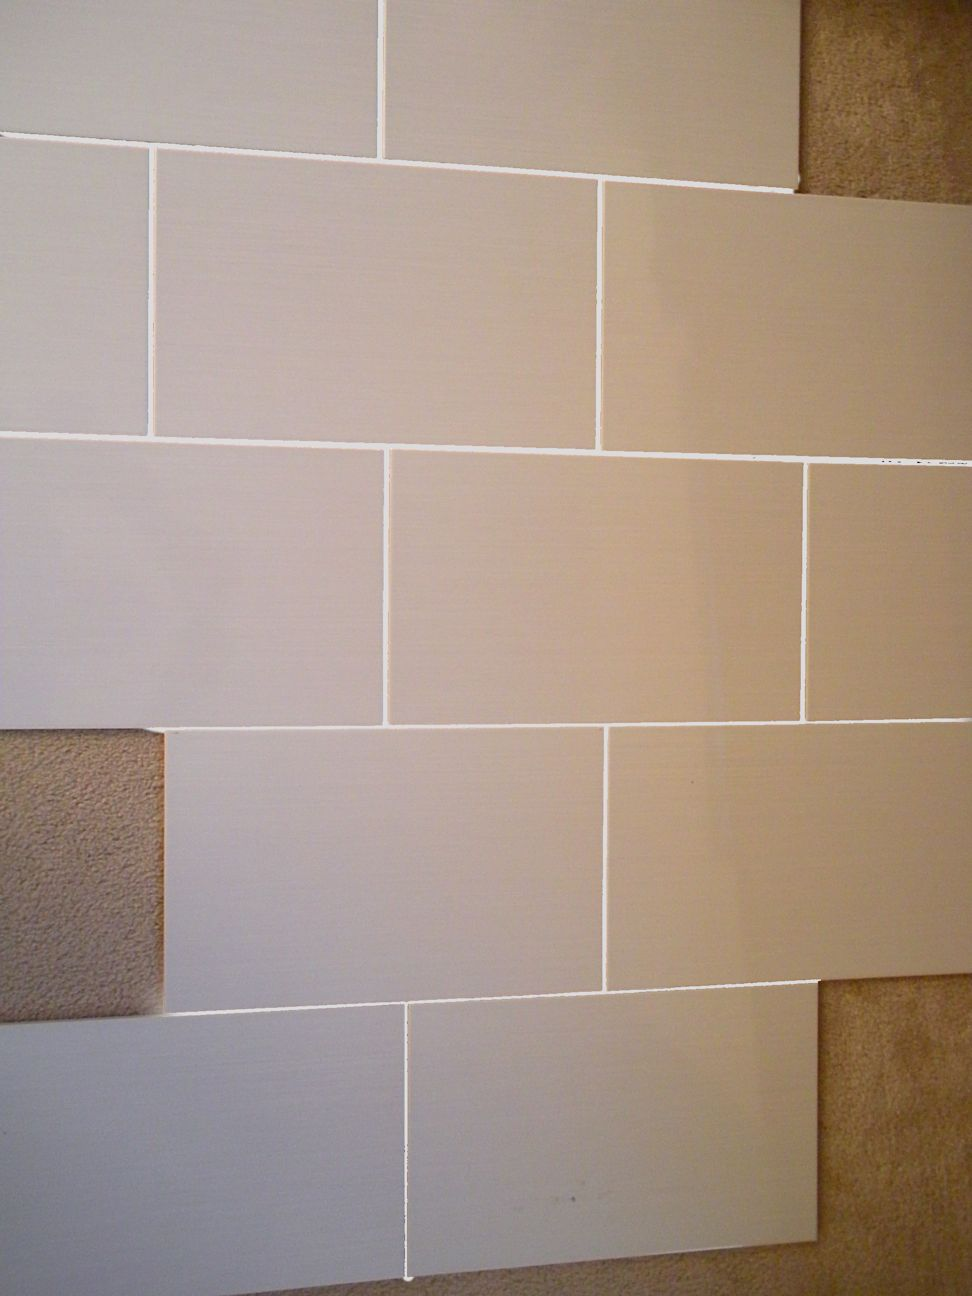 Are All Grouts Equal? - Tiling, ceramics, marble - DIY Chatroom Home ...